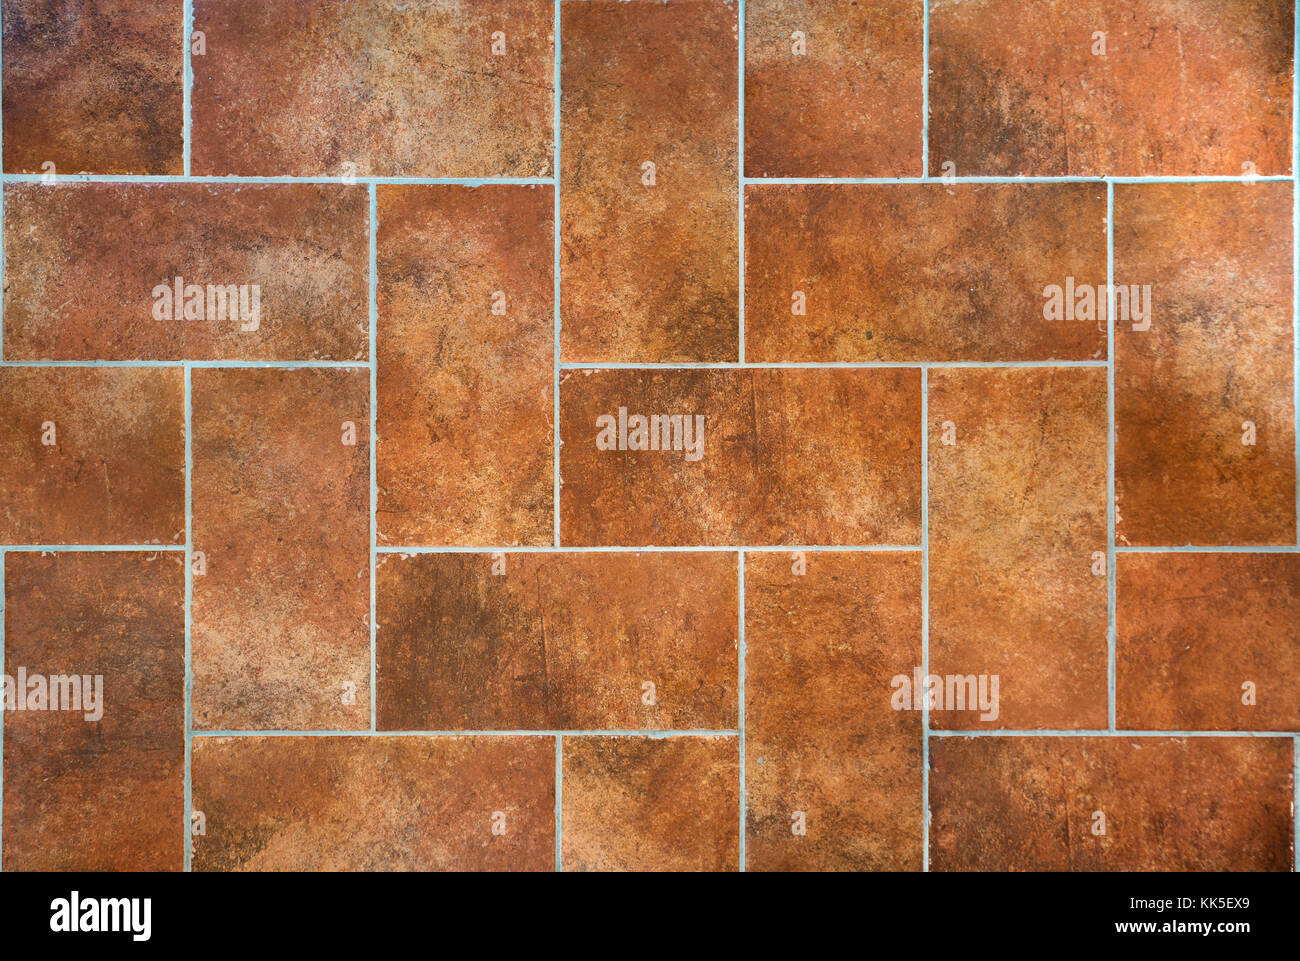 Tuscan Traditional Old And Grunge Floor Red Ceramic Stoneware Tiles